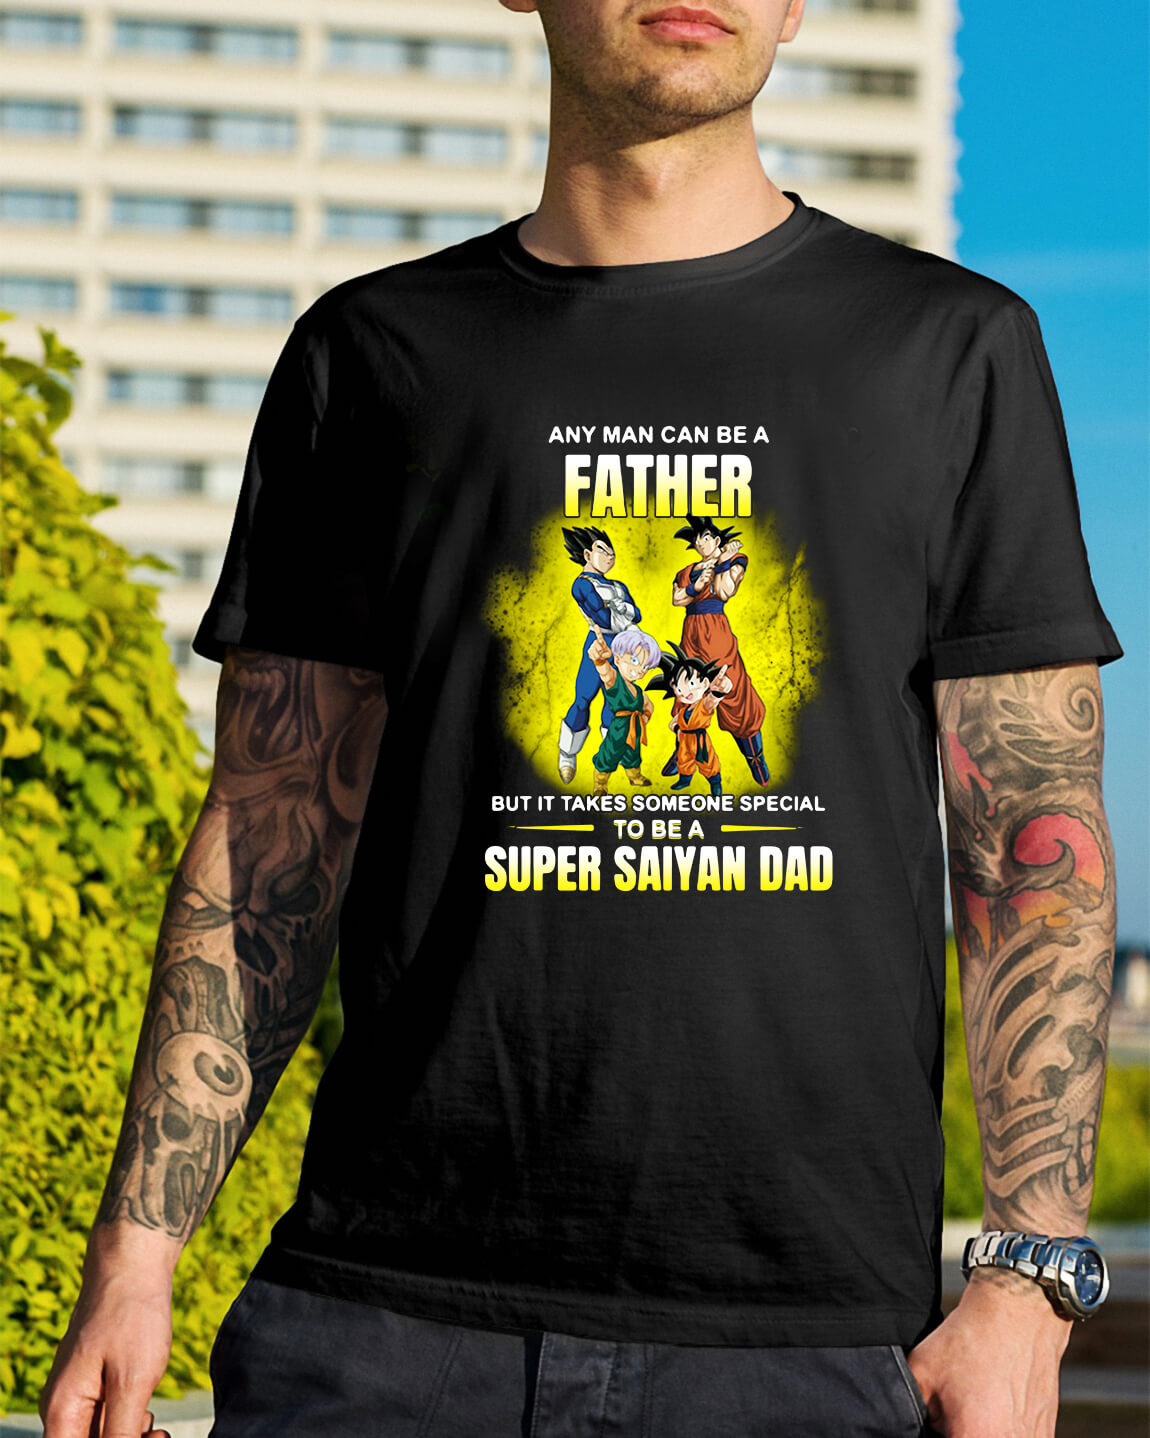 157d1845 A father but it takes someone special to be a Super Saiyan dad shirt